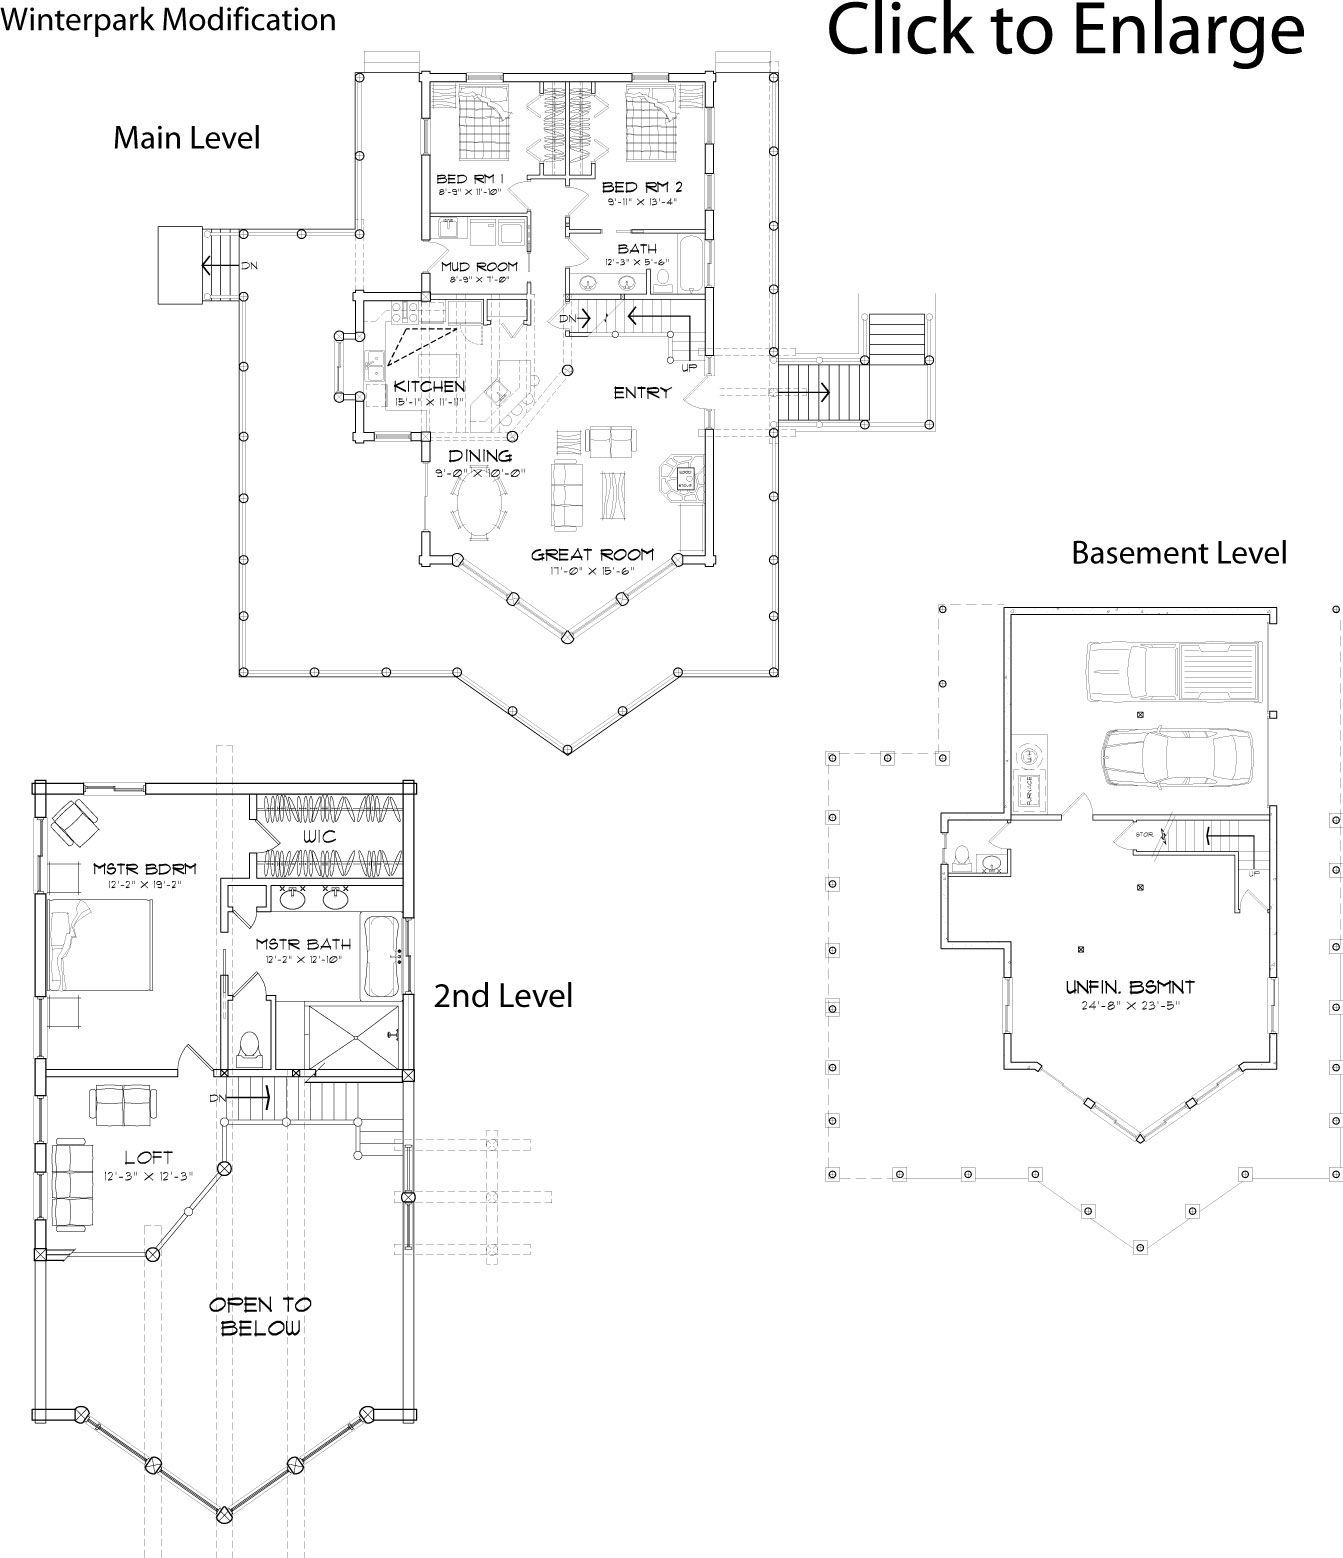 modified winterpark log home floorplan from precisioncraft | Log ...